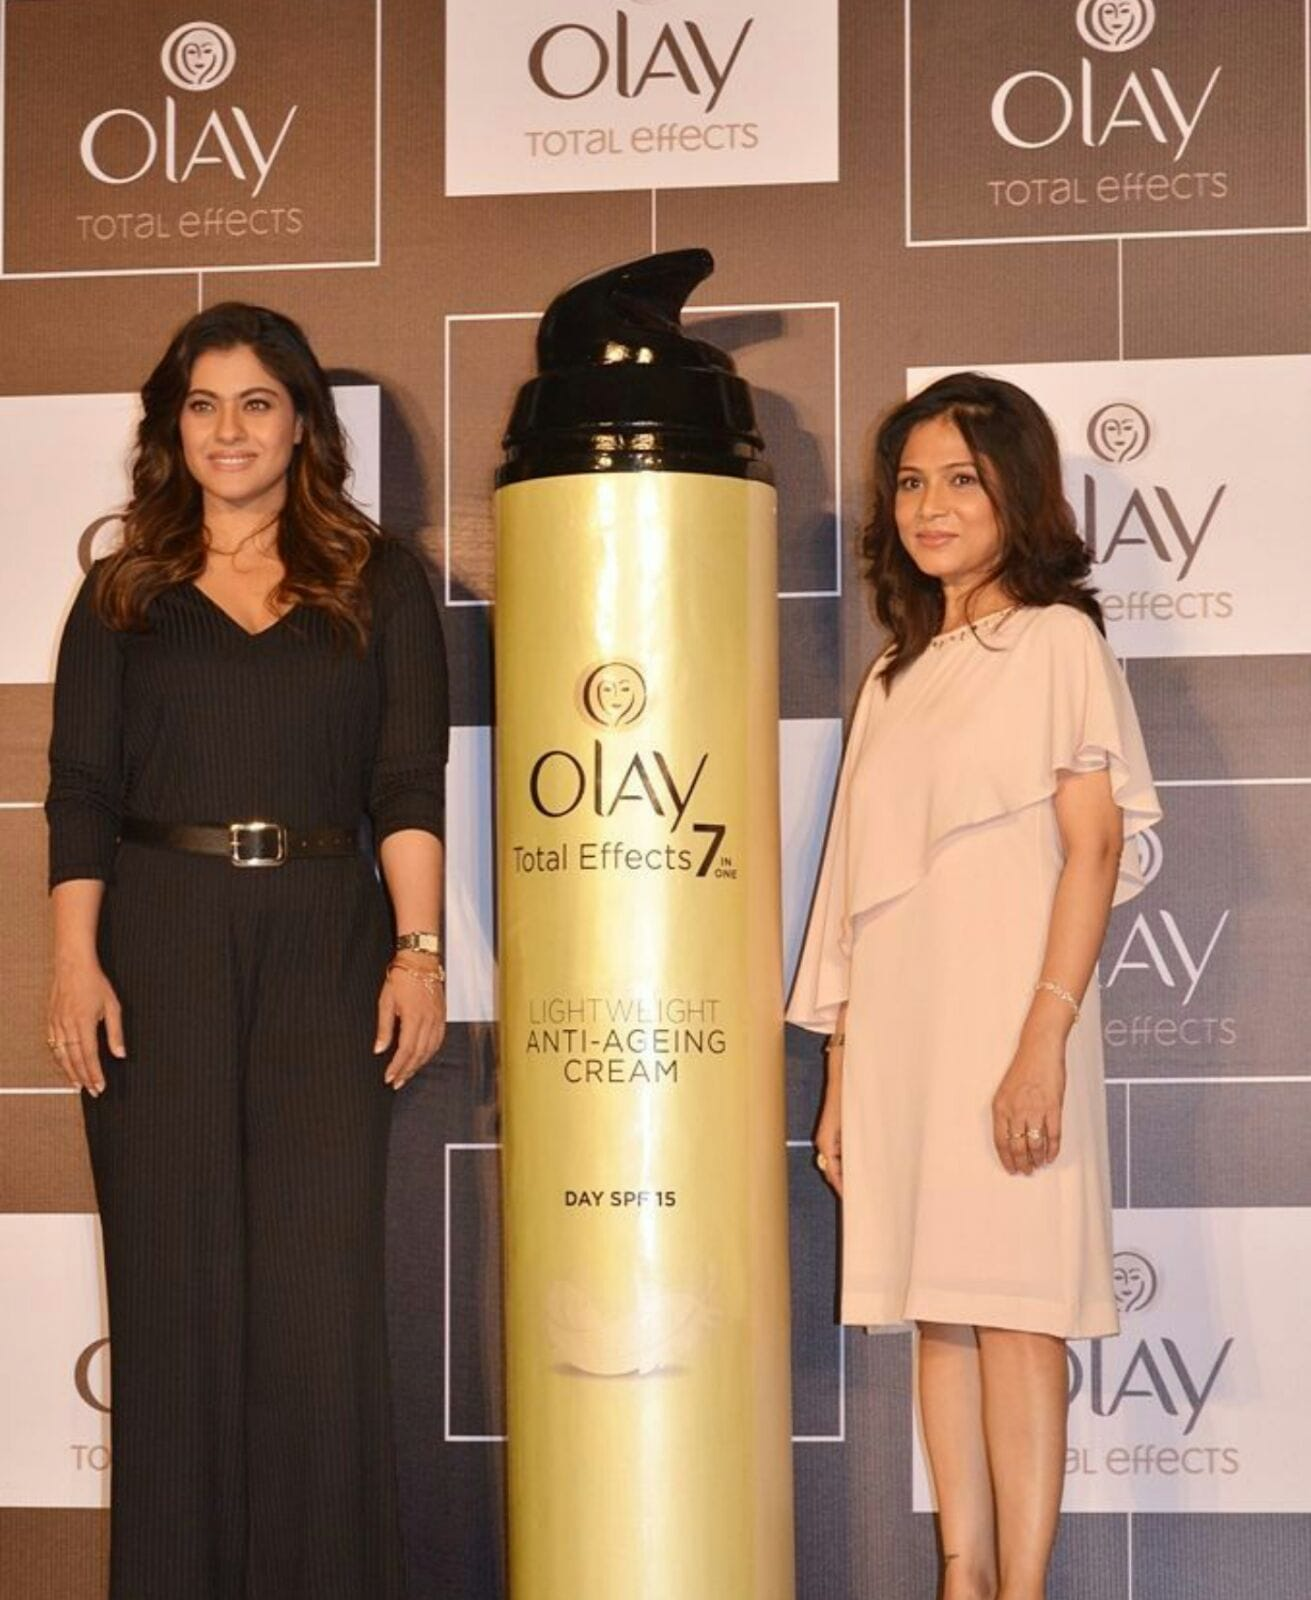 Unveling Olay Total Effects along with Kajol